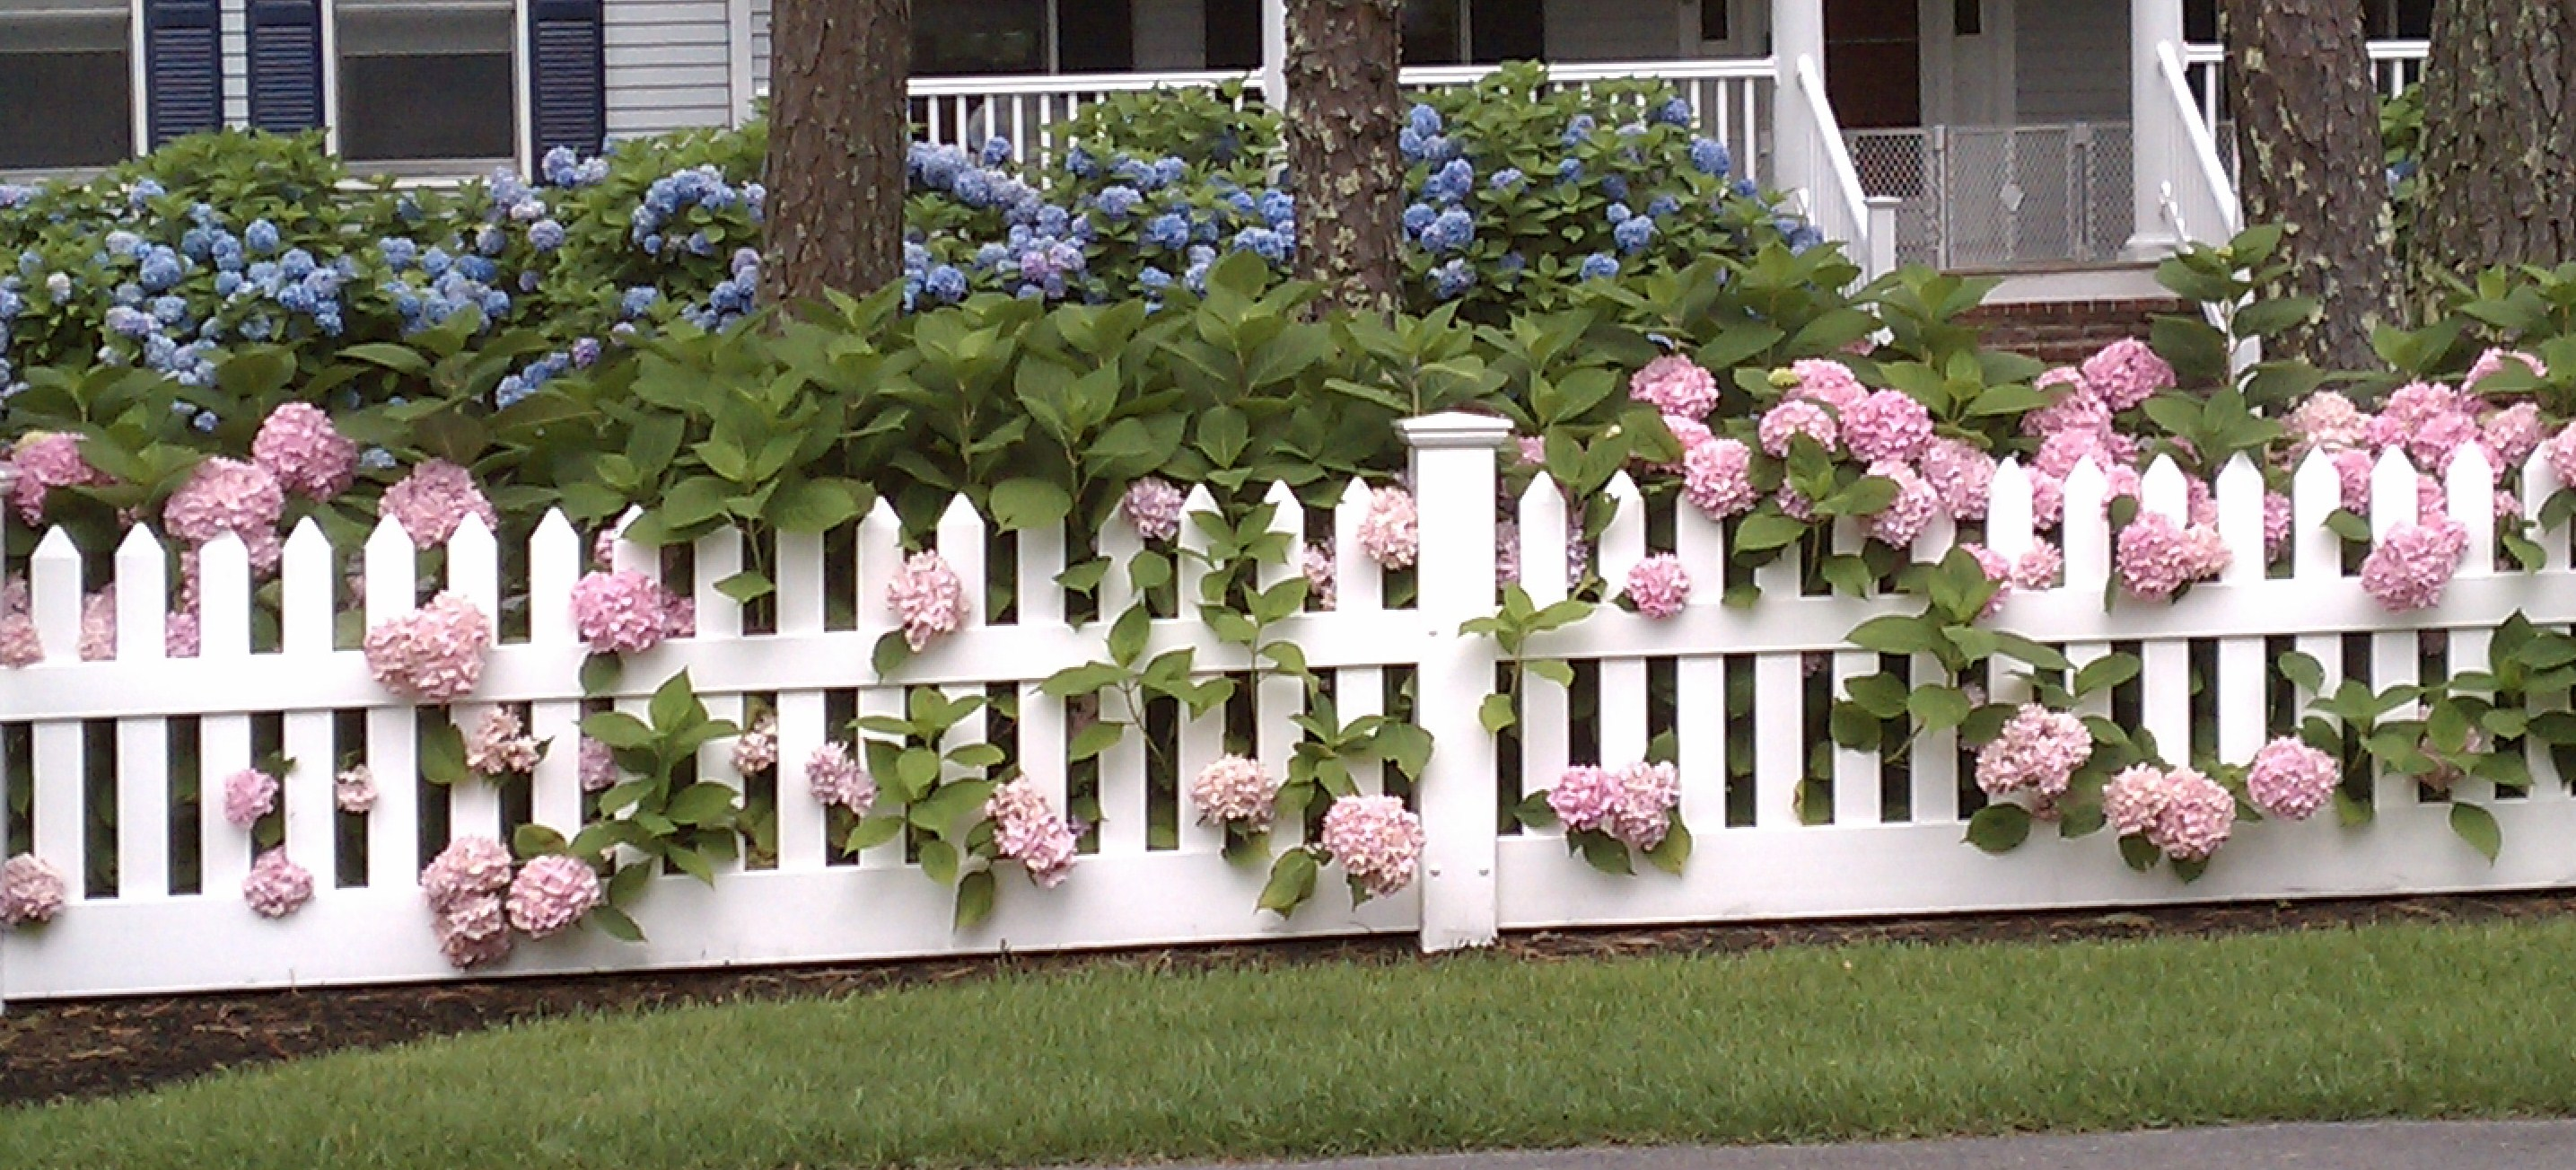 Hydrangeas City Garden Ideas